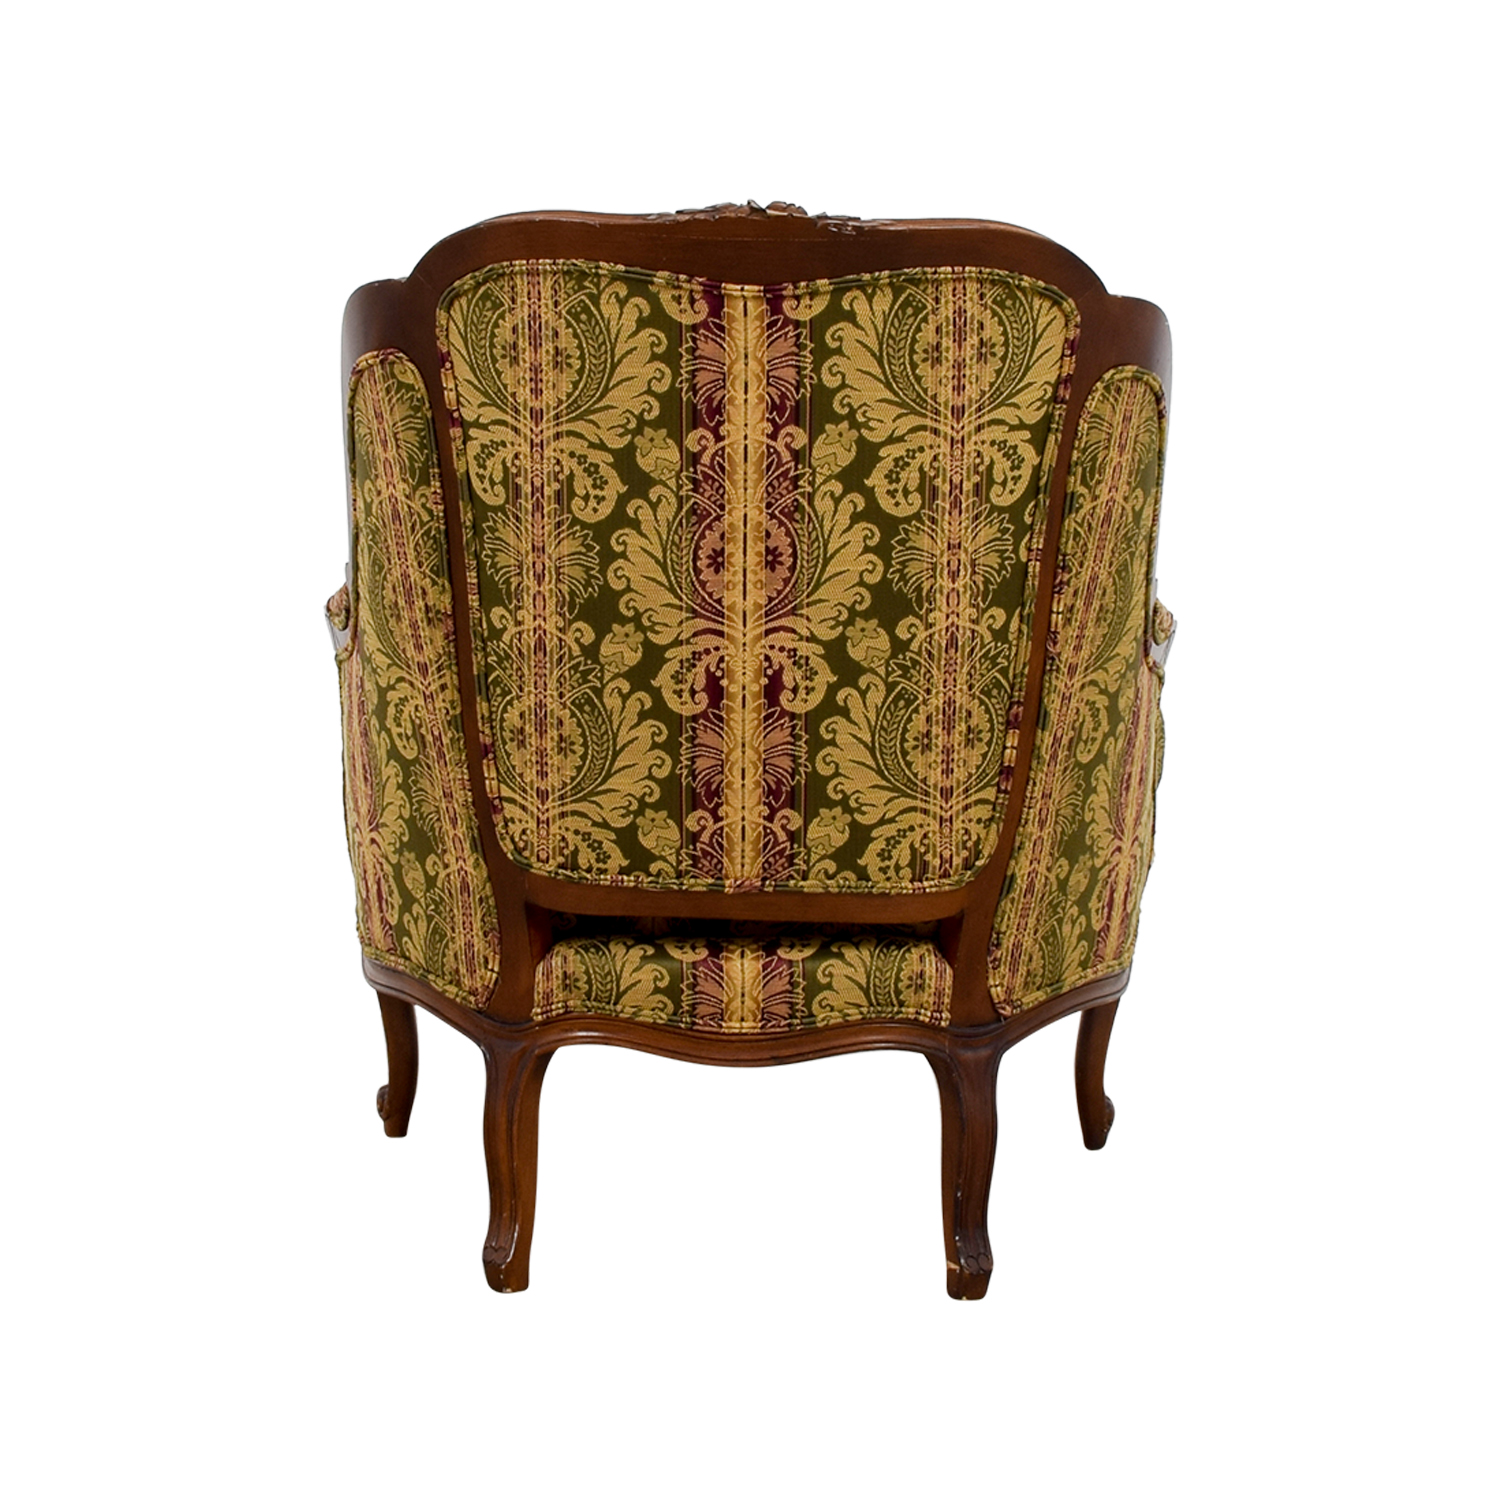 shop Drexel Heritage Bergere Green Gold and Burgundy Chair Drexel Heritage Accent Chairs